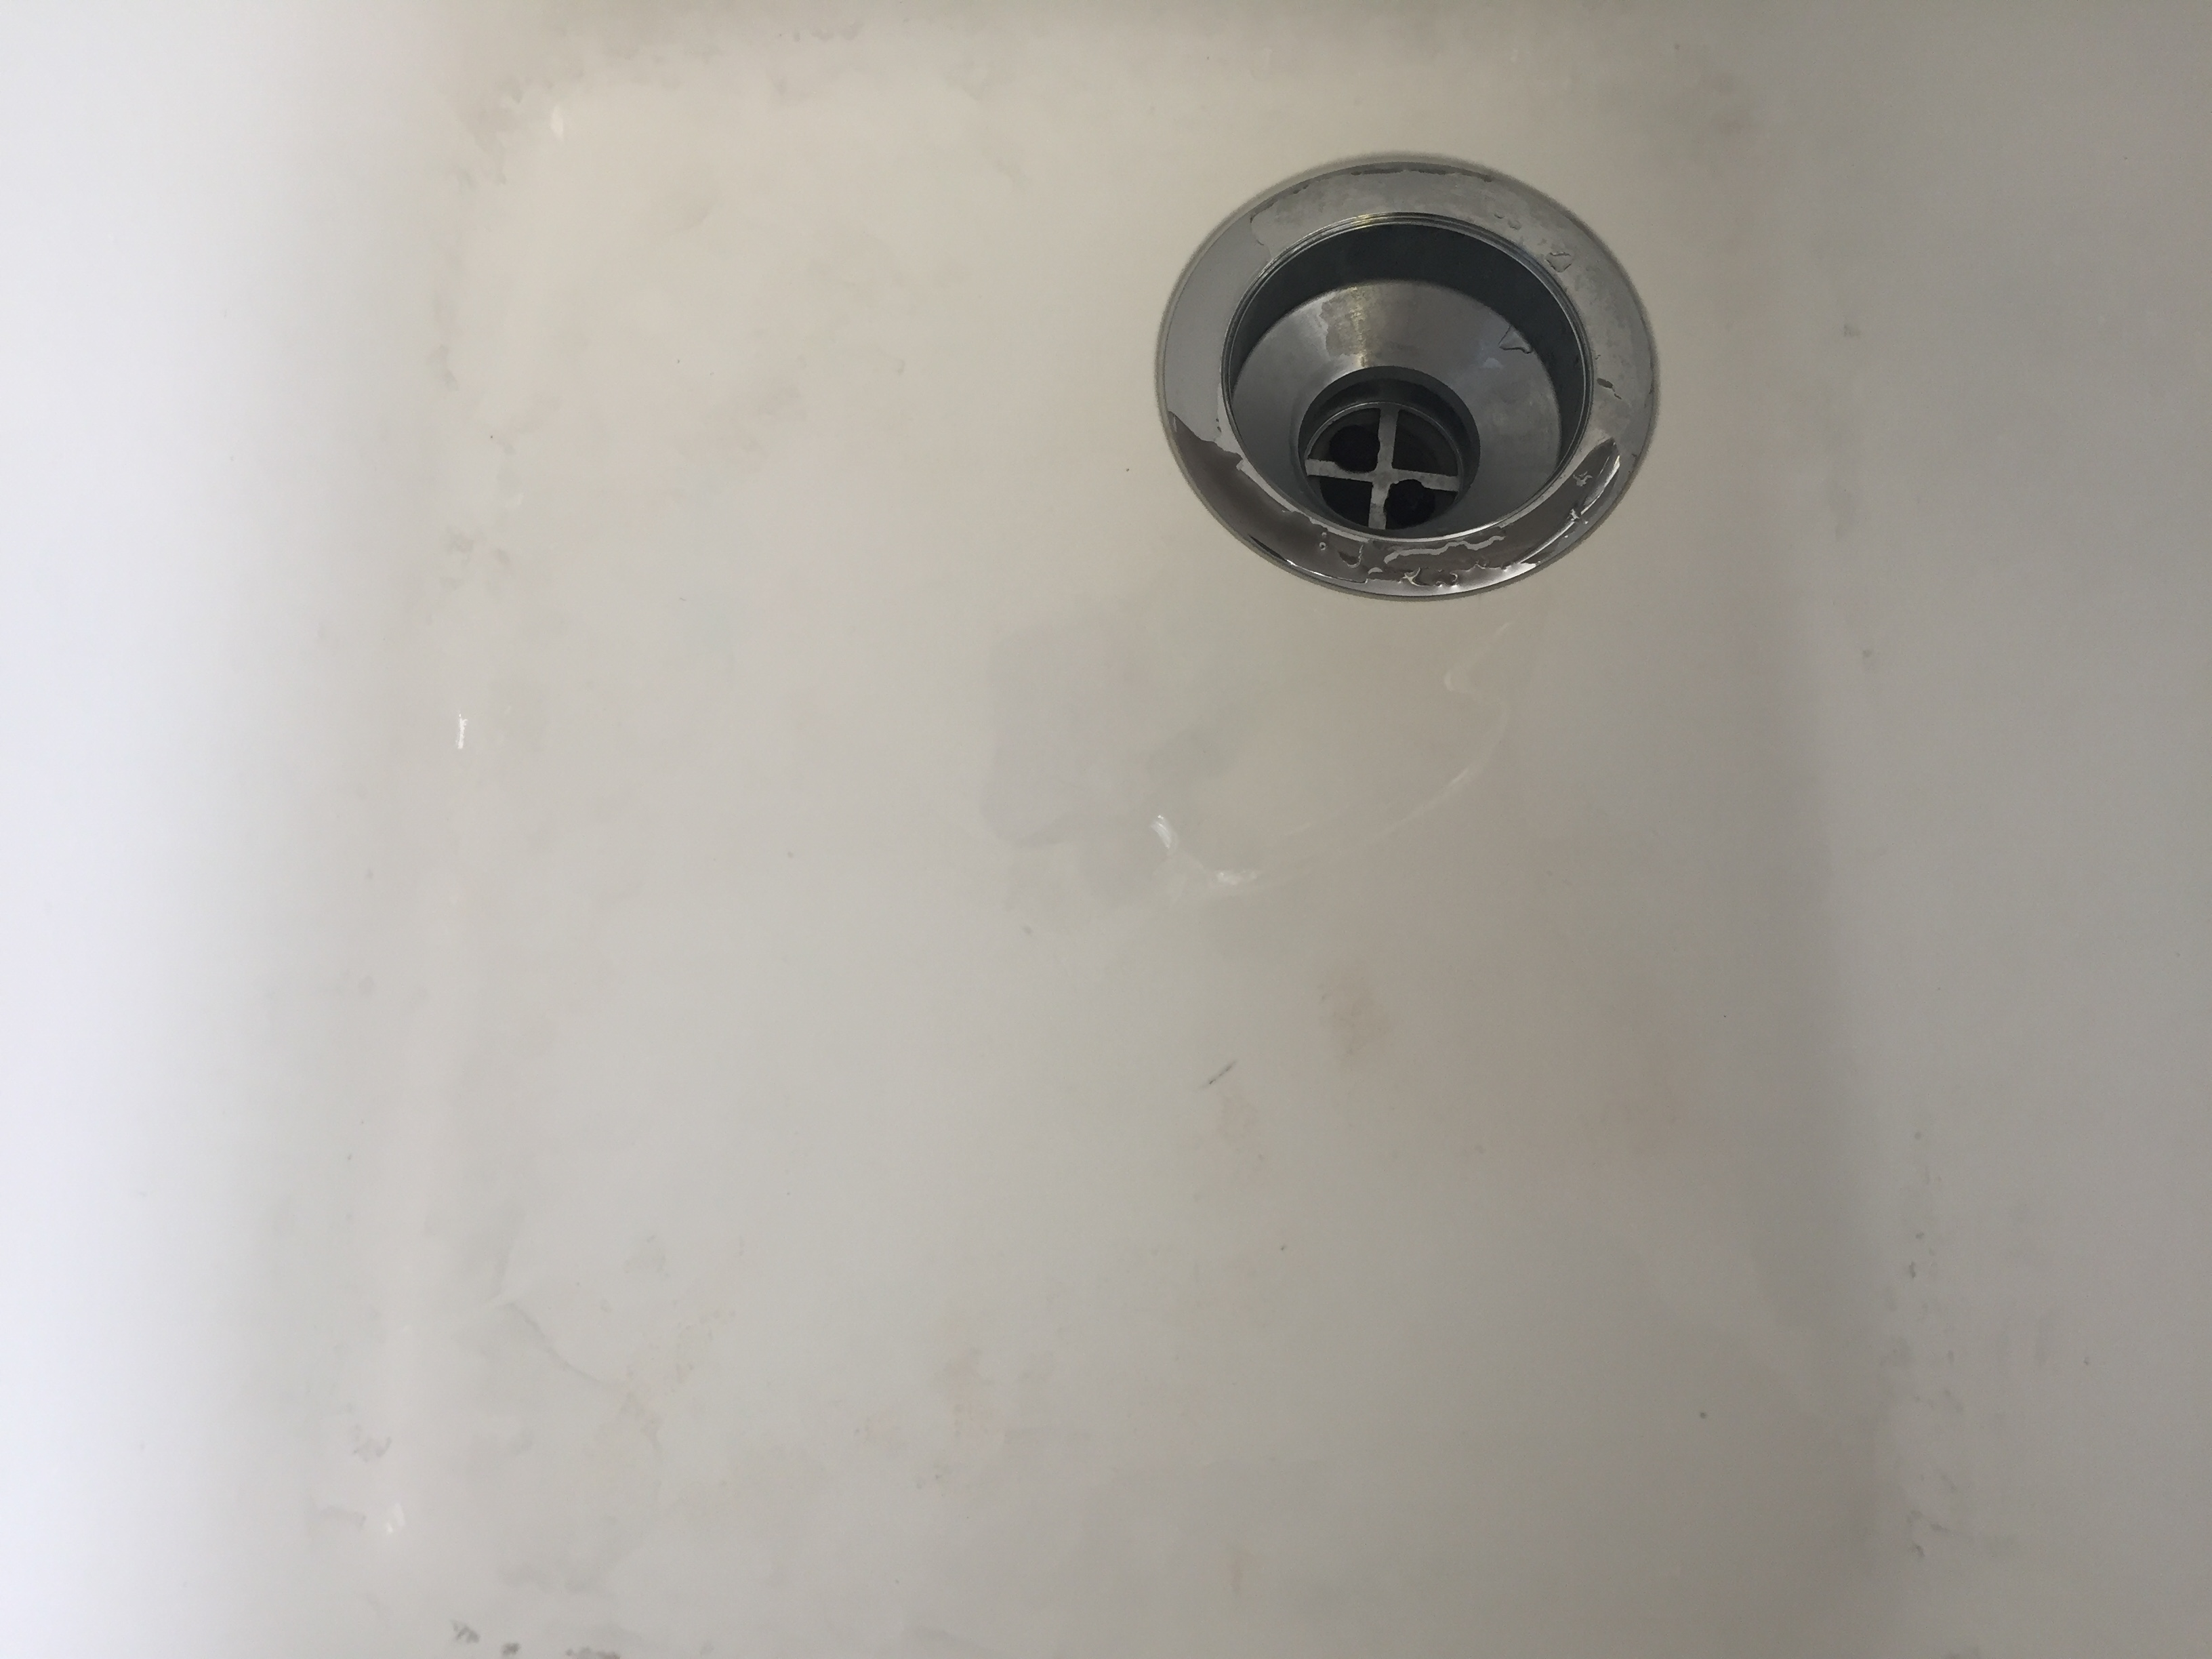 The Secret To Removing Stains From Your Porcelain Sink Kitchola - Remove stains from bathroom sink